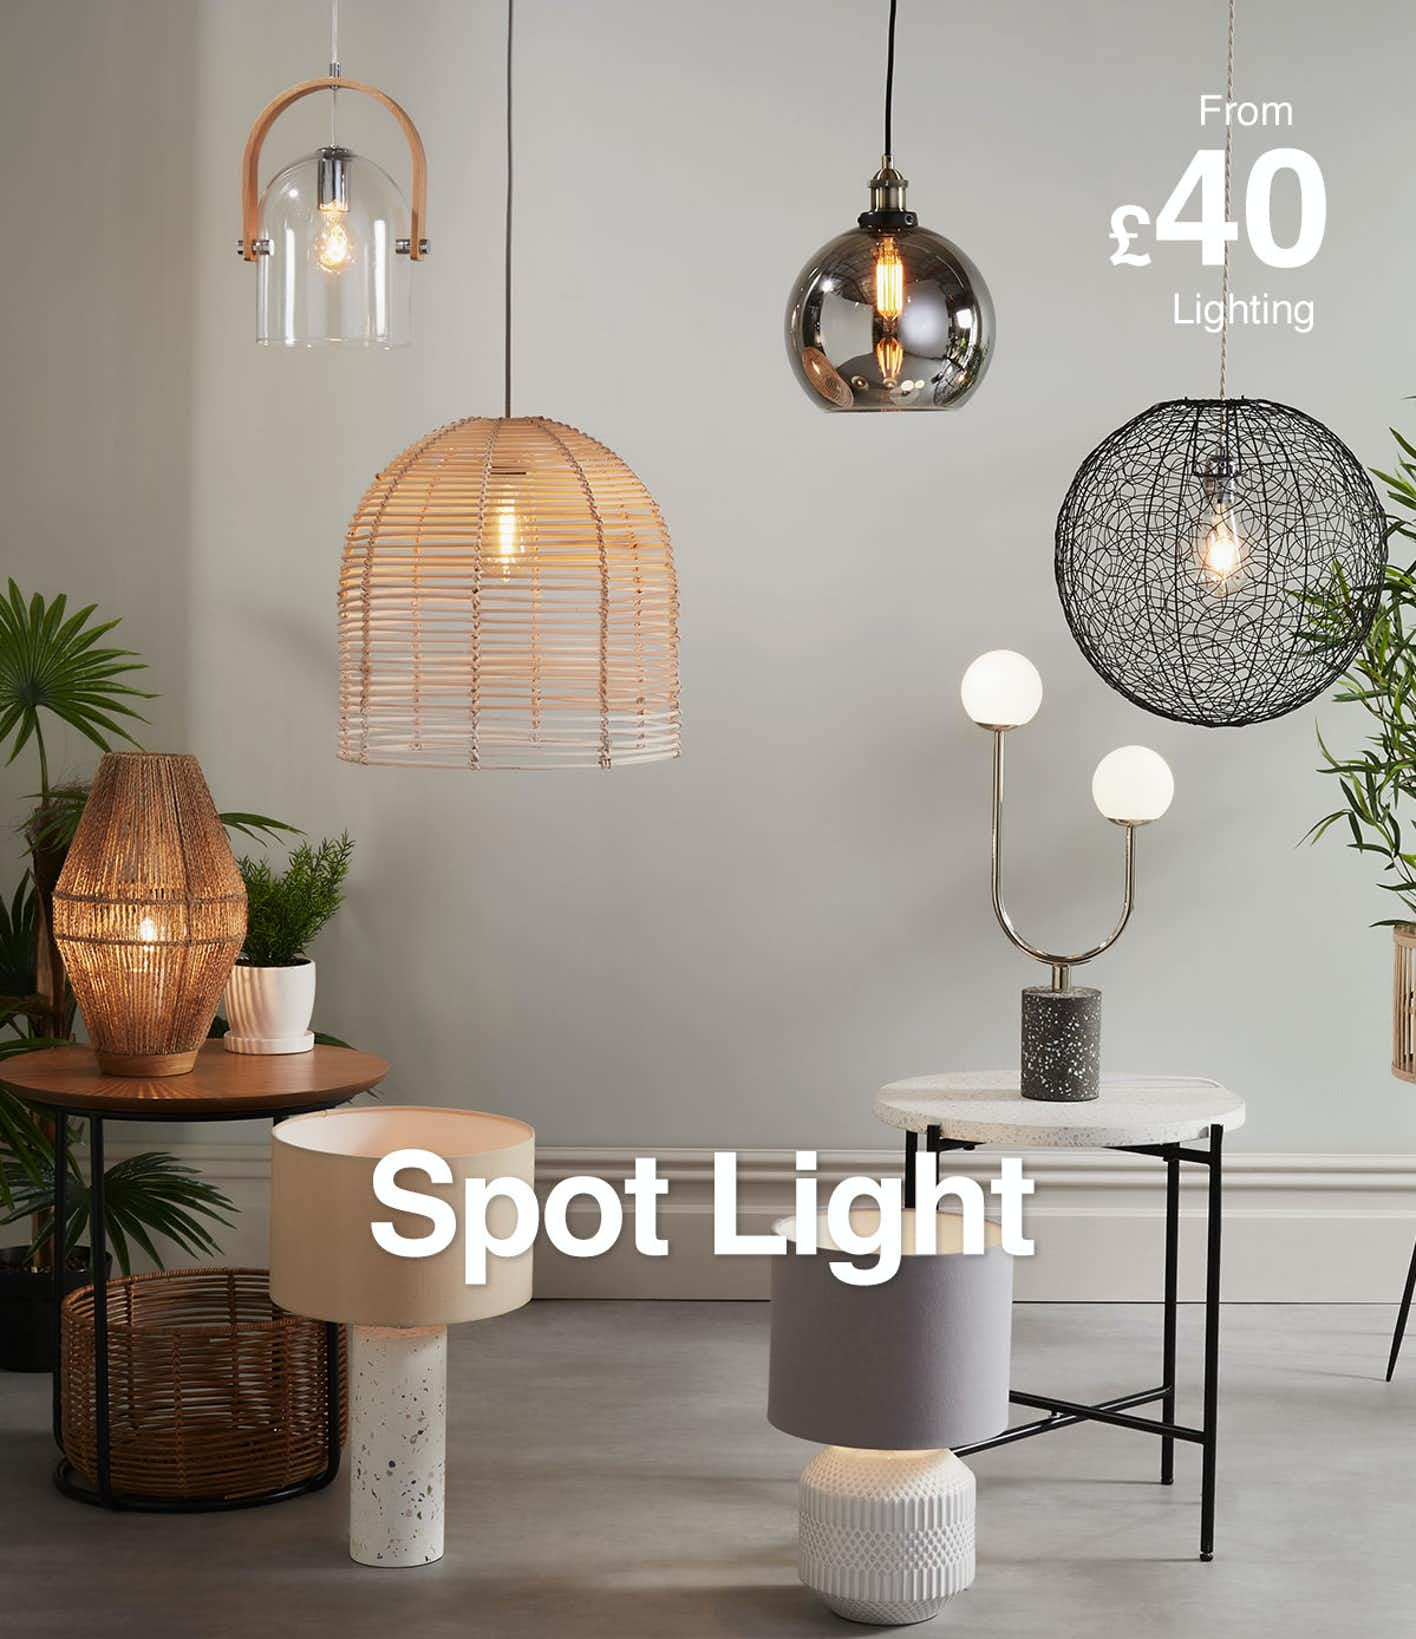 Light Shop Liverpool Road Ainsdale: Buy Home Furnishings & Accessories Online